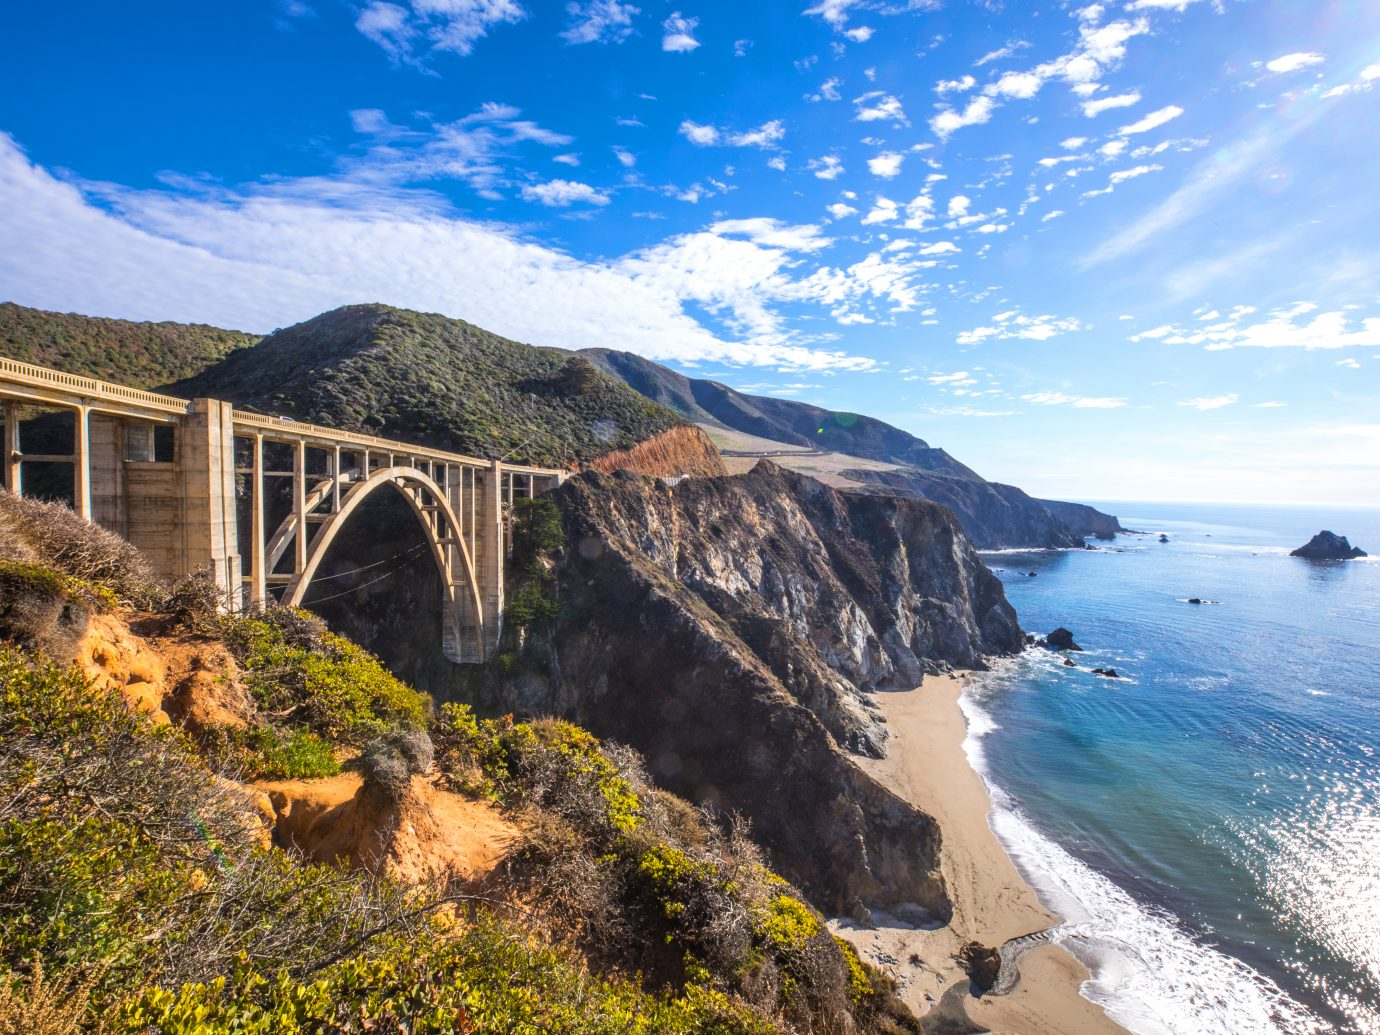 Bixby Bridge and Pacific Coast Highway 1